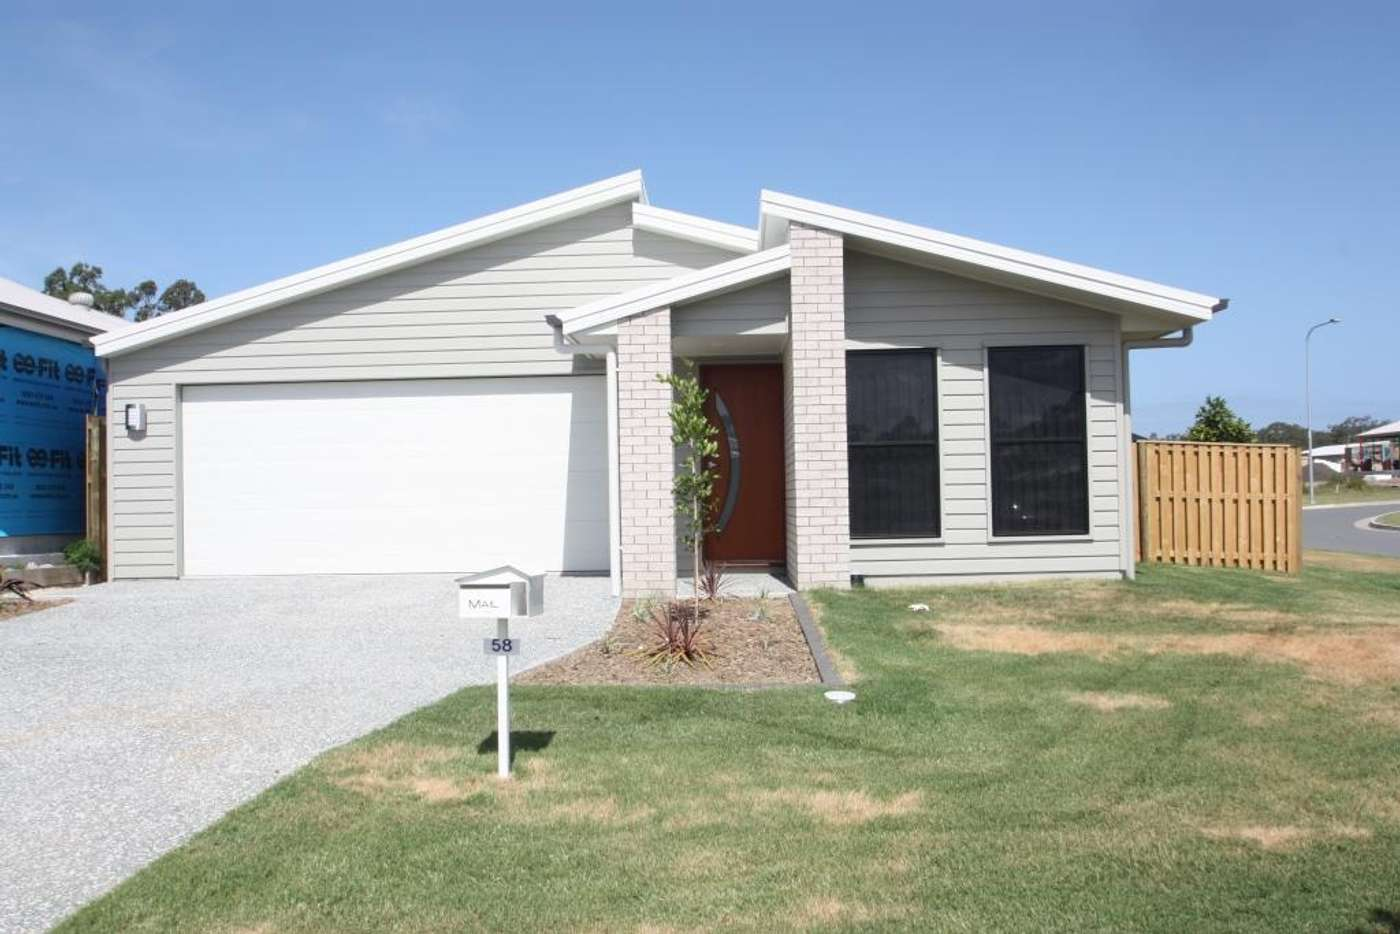 Main view of Homely house listing, 58 Marshall Circuit, Coomera QLD 4209